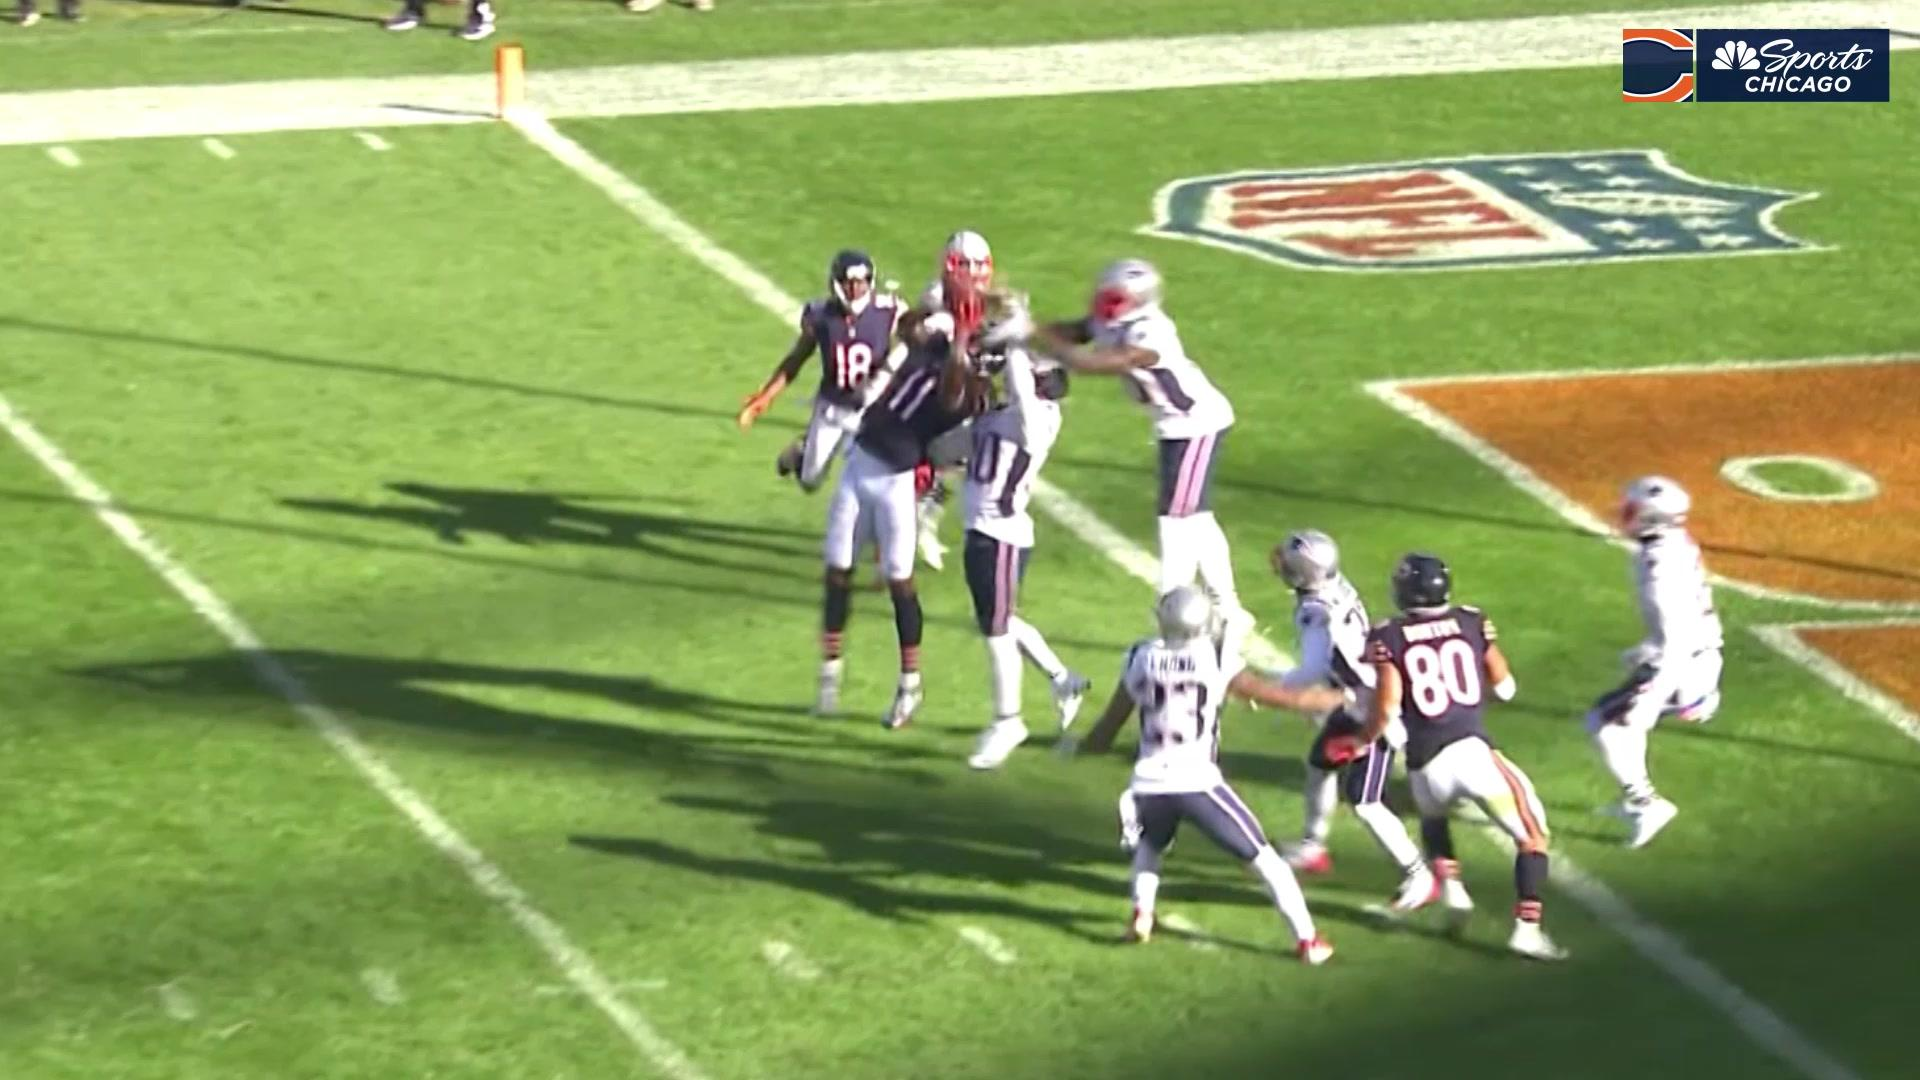 Bears react to the Hail Mary that neearrllyyy tied the game